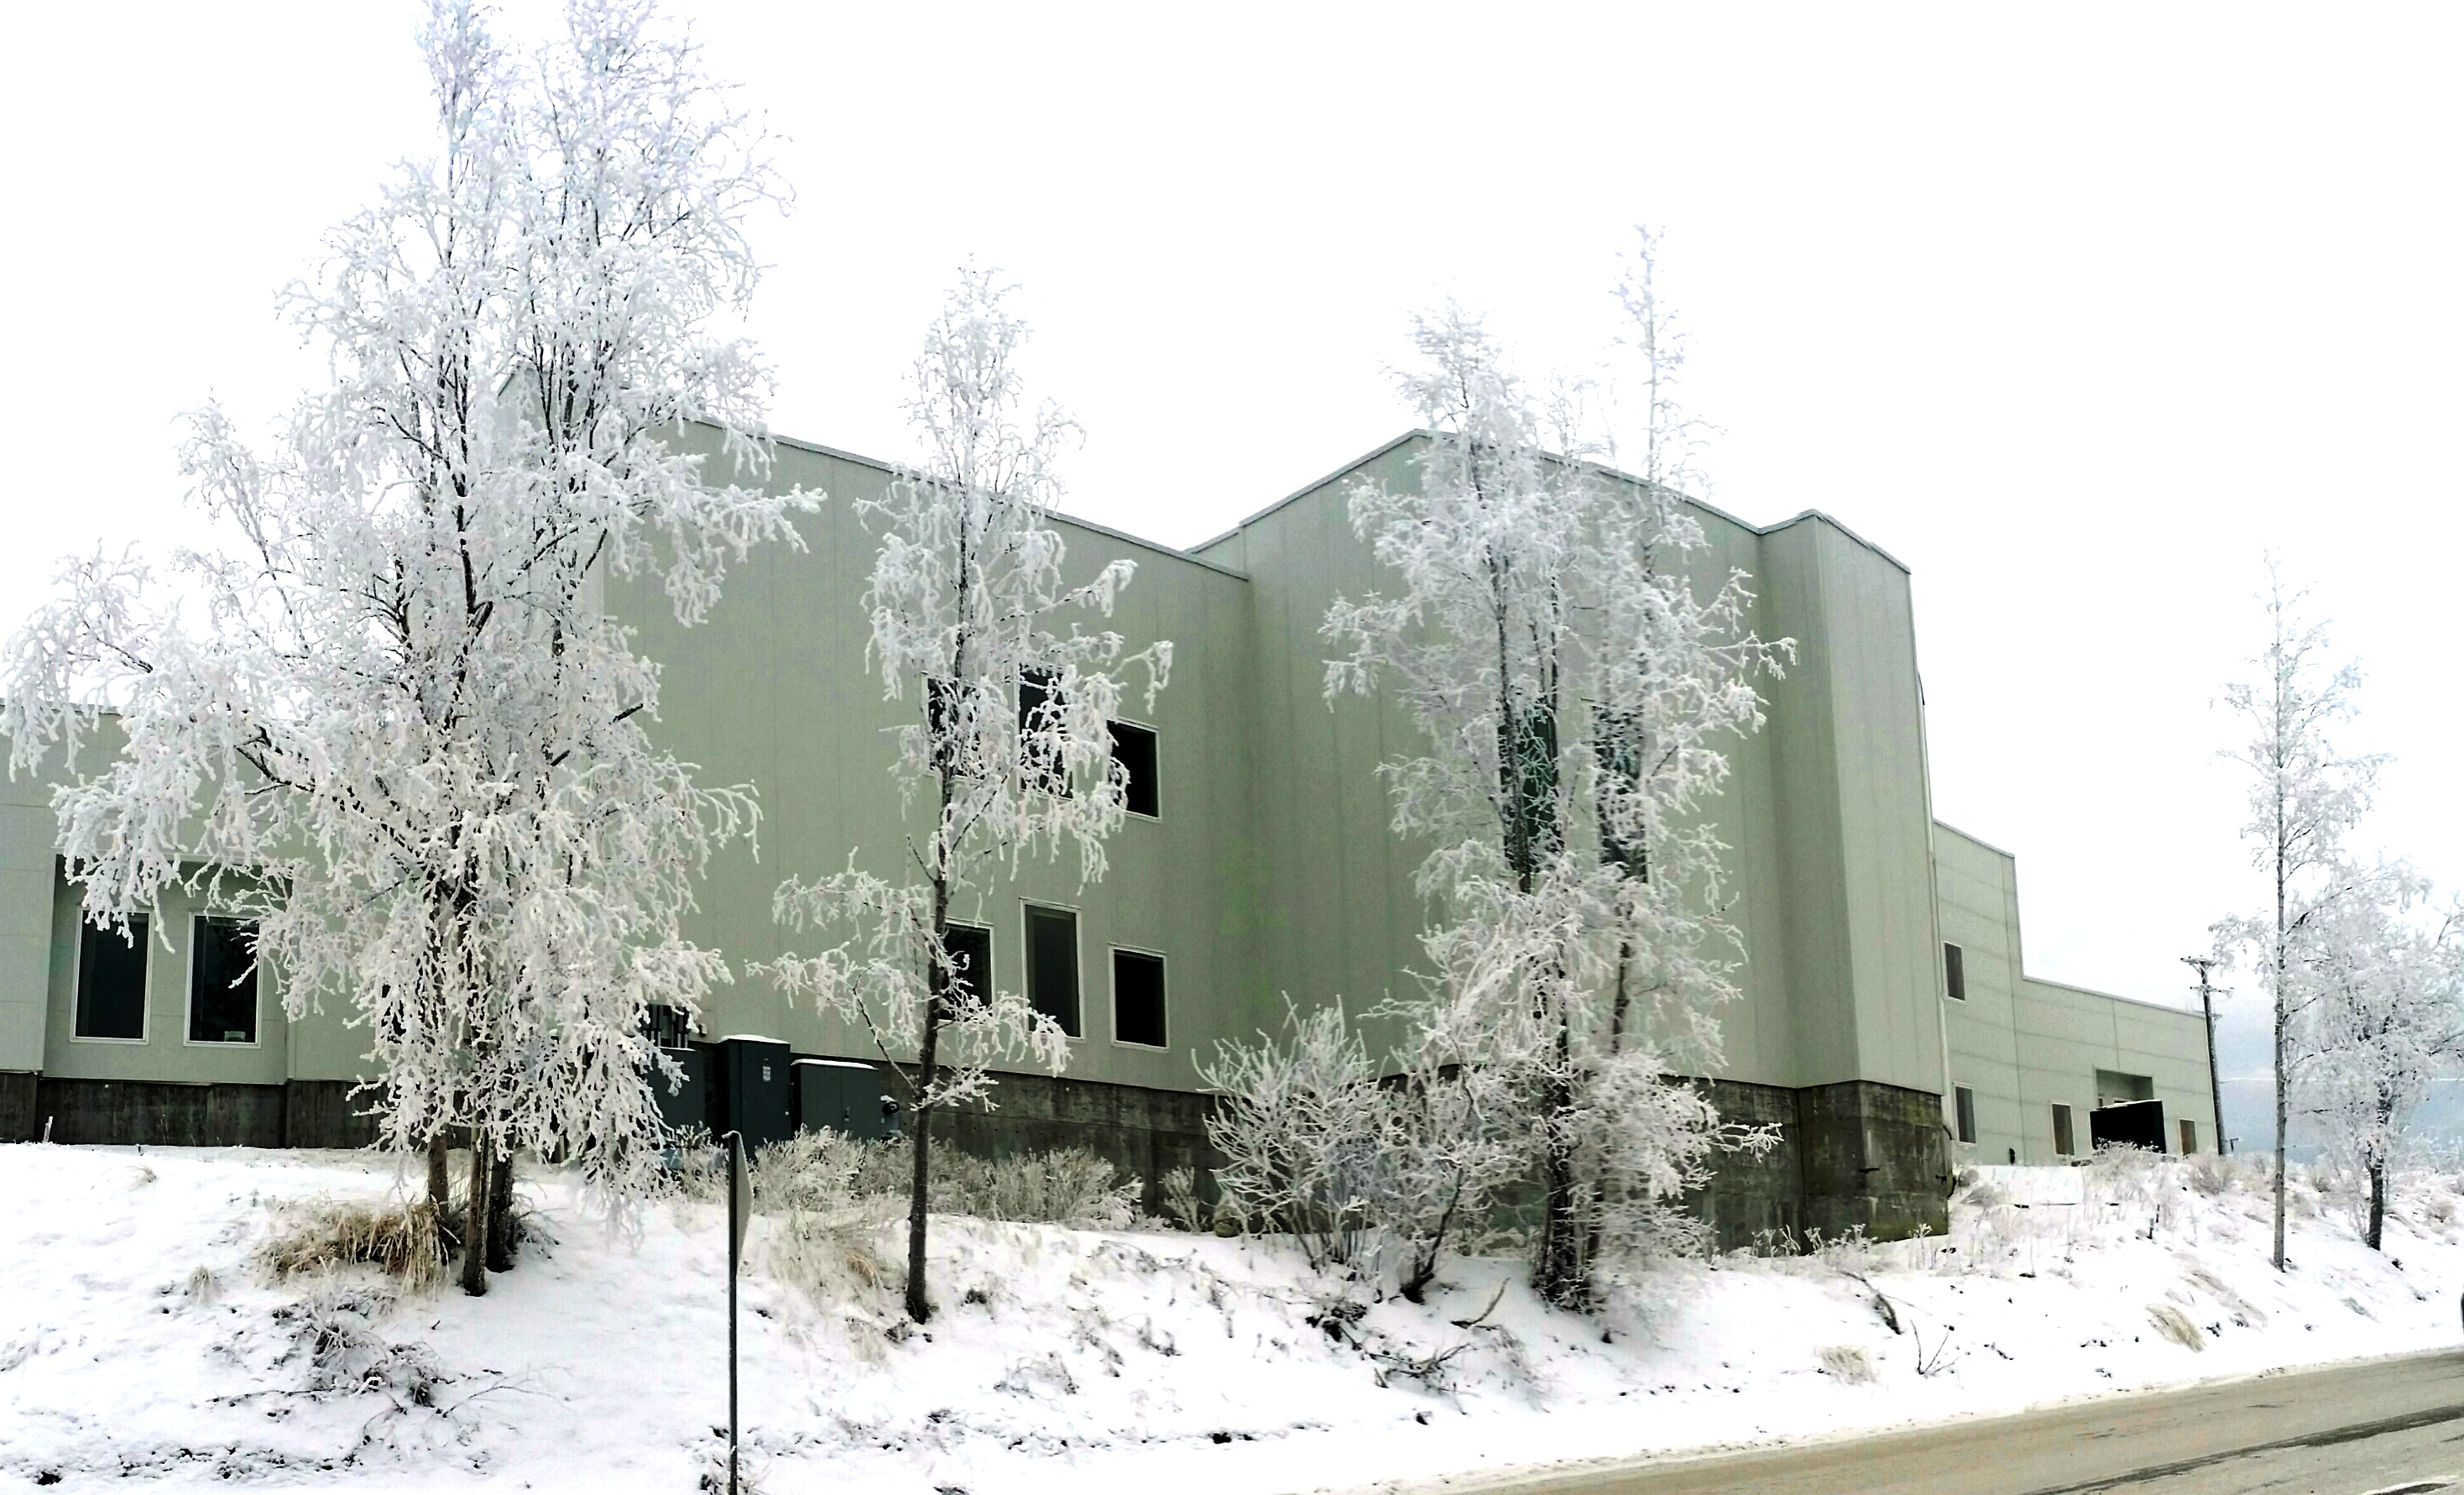 The Islamic Community Center of Anchorage Alaska is the first mosque to be built in the state.